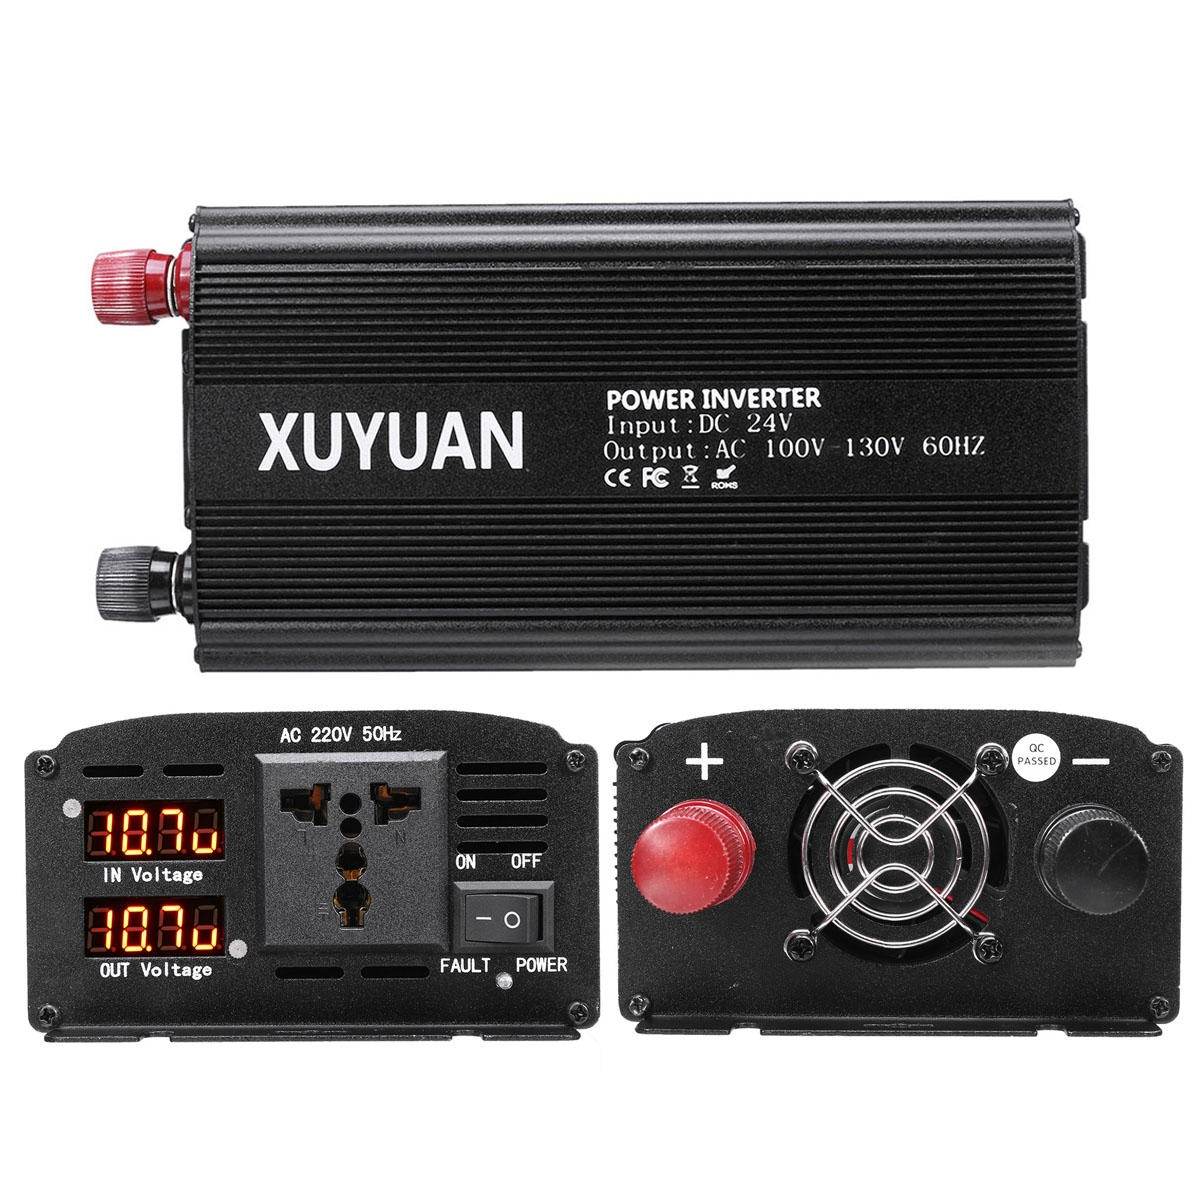 DC 12V / 24V Till AC 110V / 220V Bärbar Dual LED Inverter 7000W Peak Sine Wave Power Converter